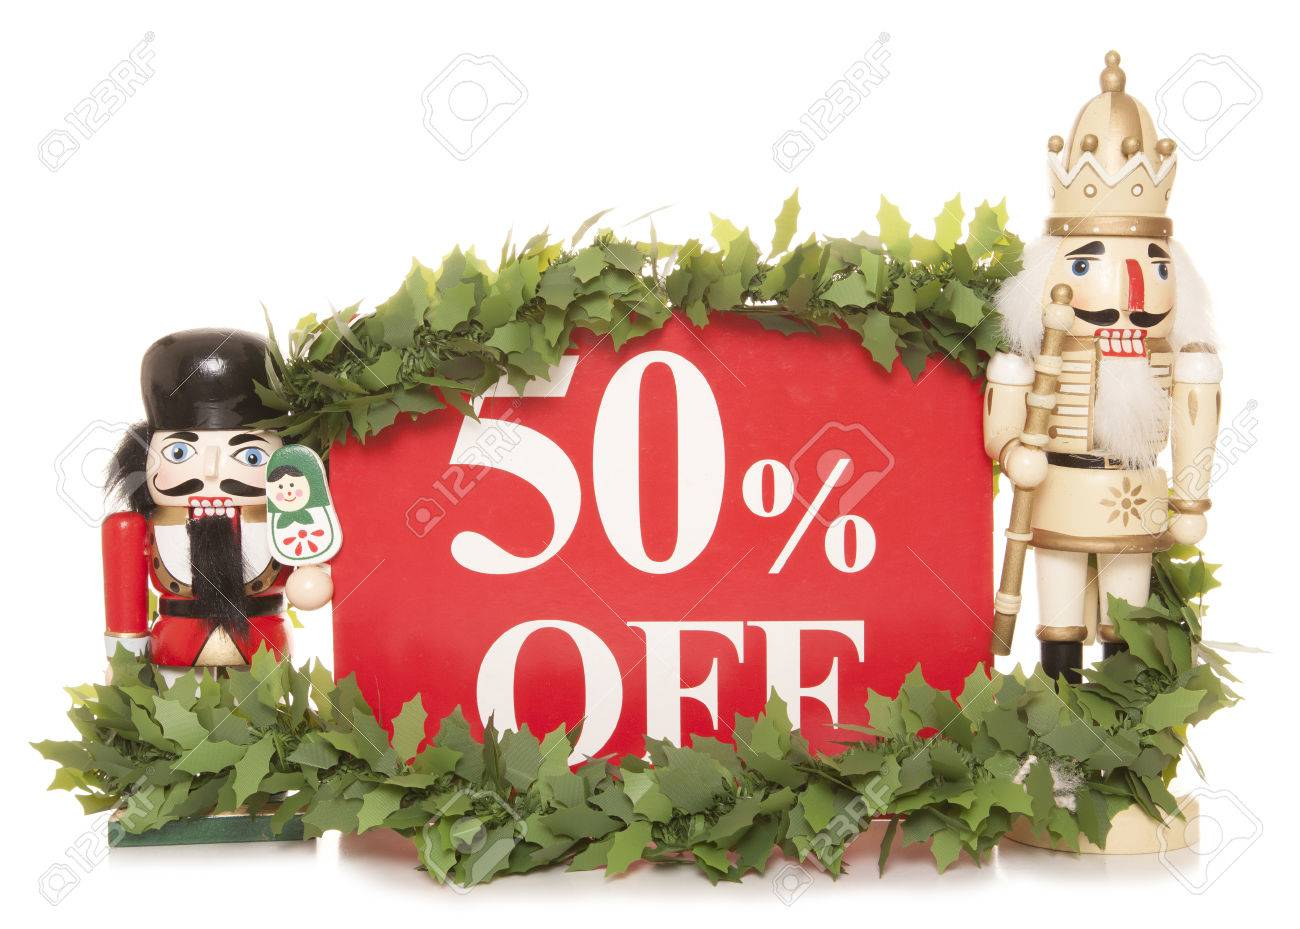 50% Off Christmas Sale Sign And Nutcracker Ornaments Cutout Stock ...